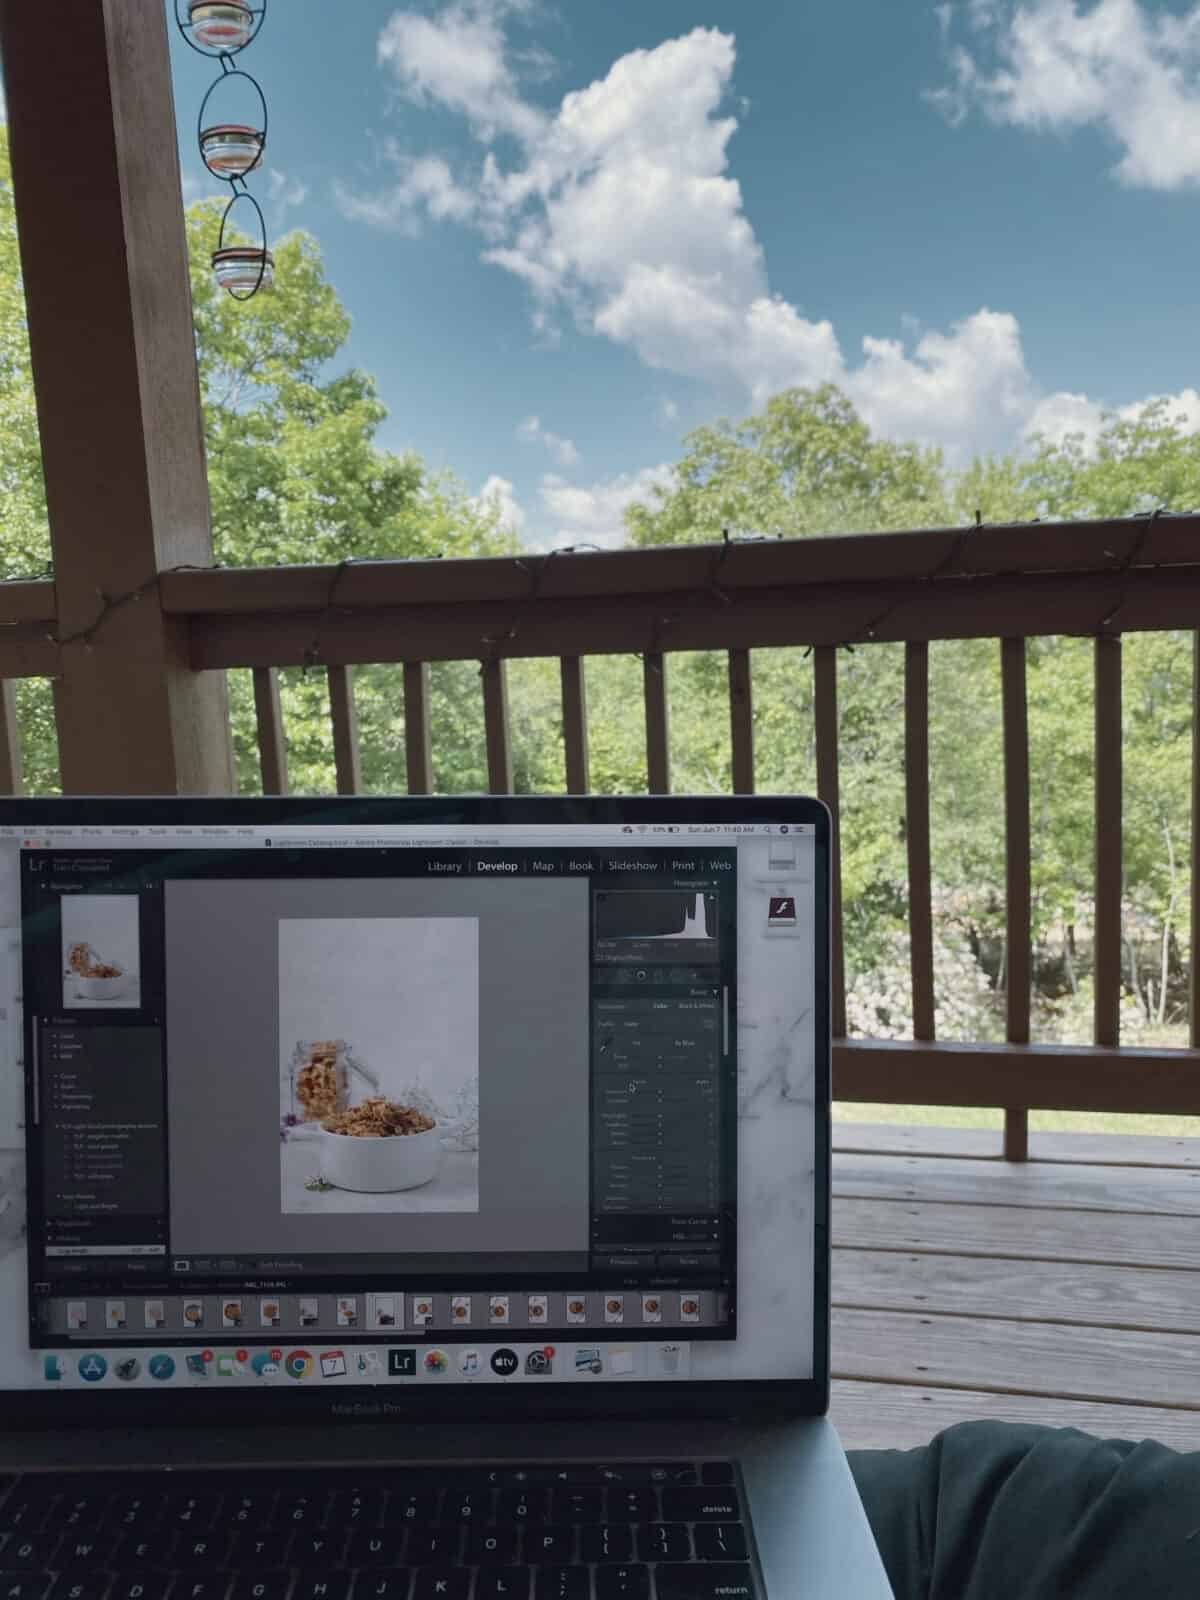 computer with photo of granola open with blue skies and trees in the background